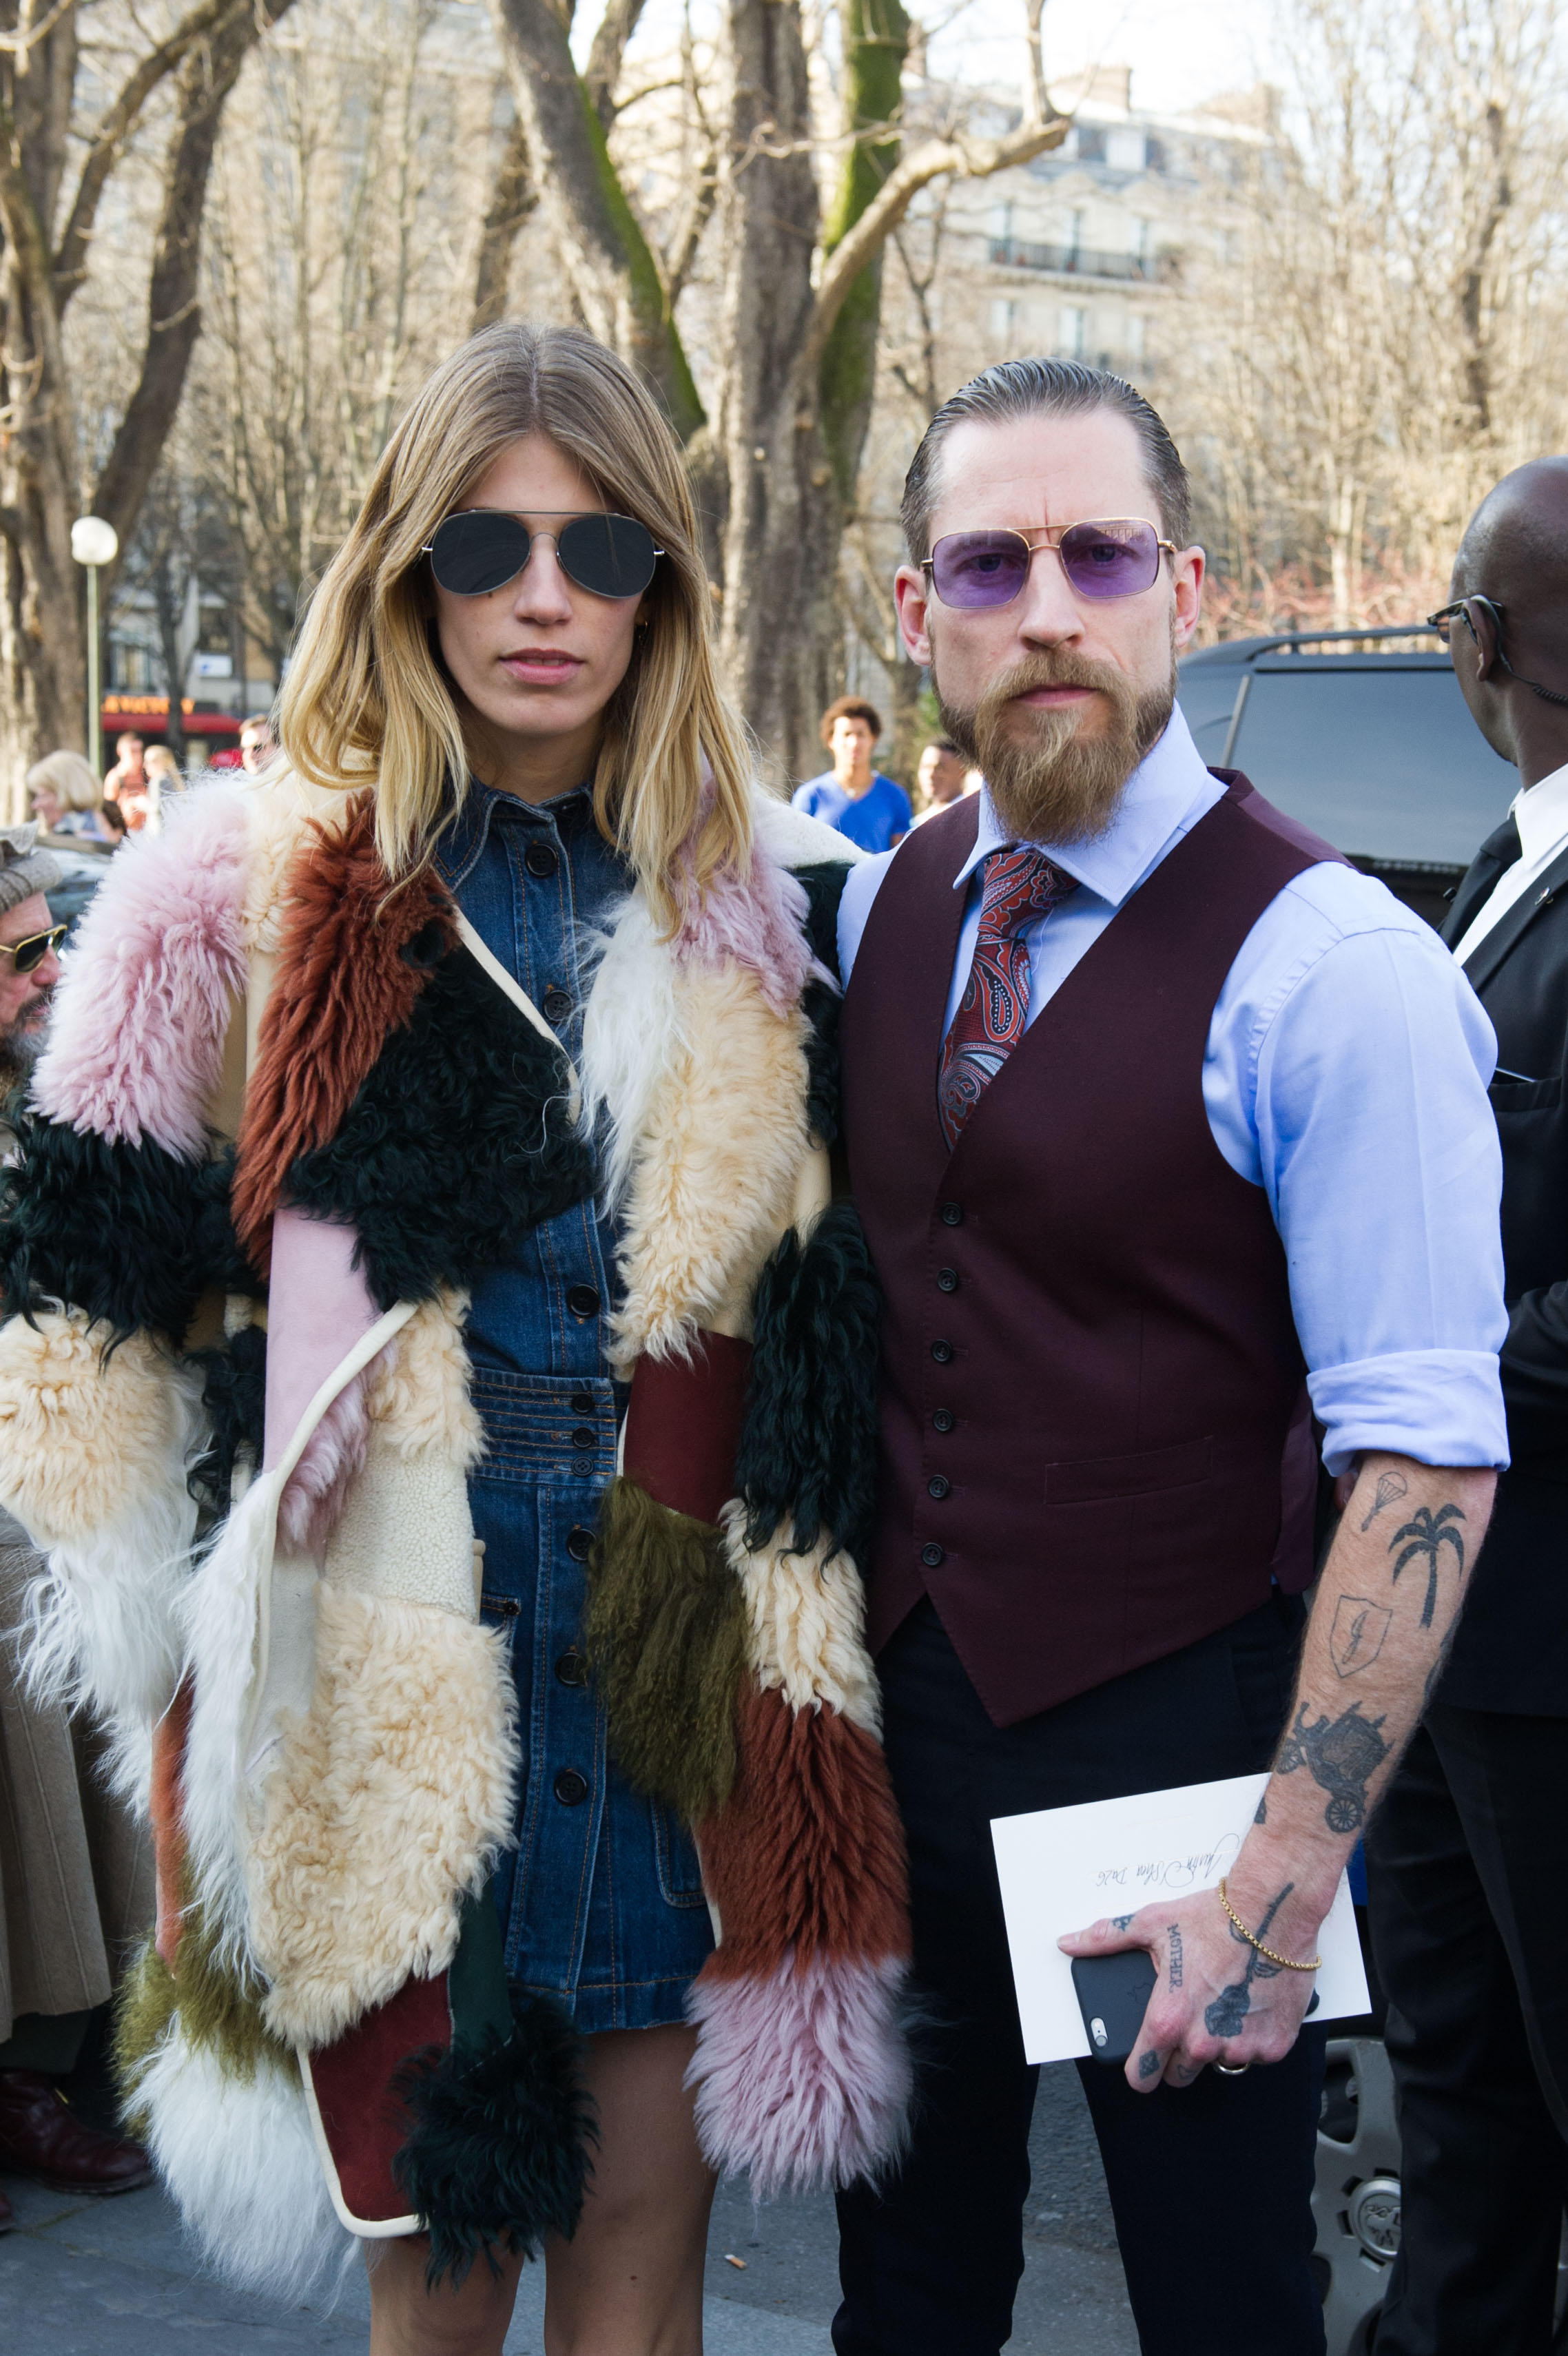 Buying director Justin Daniel O'Shea, right, and fashion editor Veronika Heilbrunner pose as they arrive for Chloe's ready to wear fall-winter 2015-2016 fashion collection during Paris fashion week, Paris, France, Sunday, March 8, 2015.